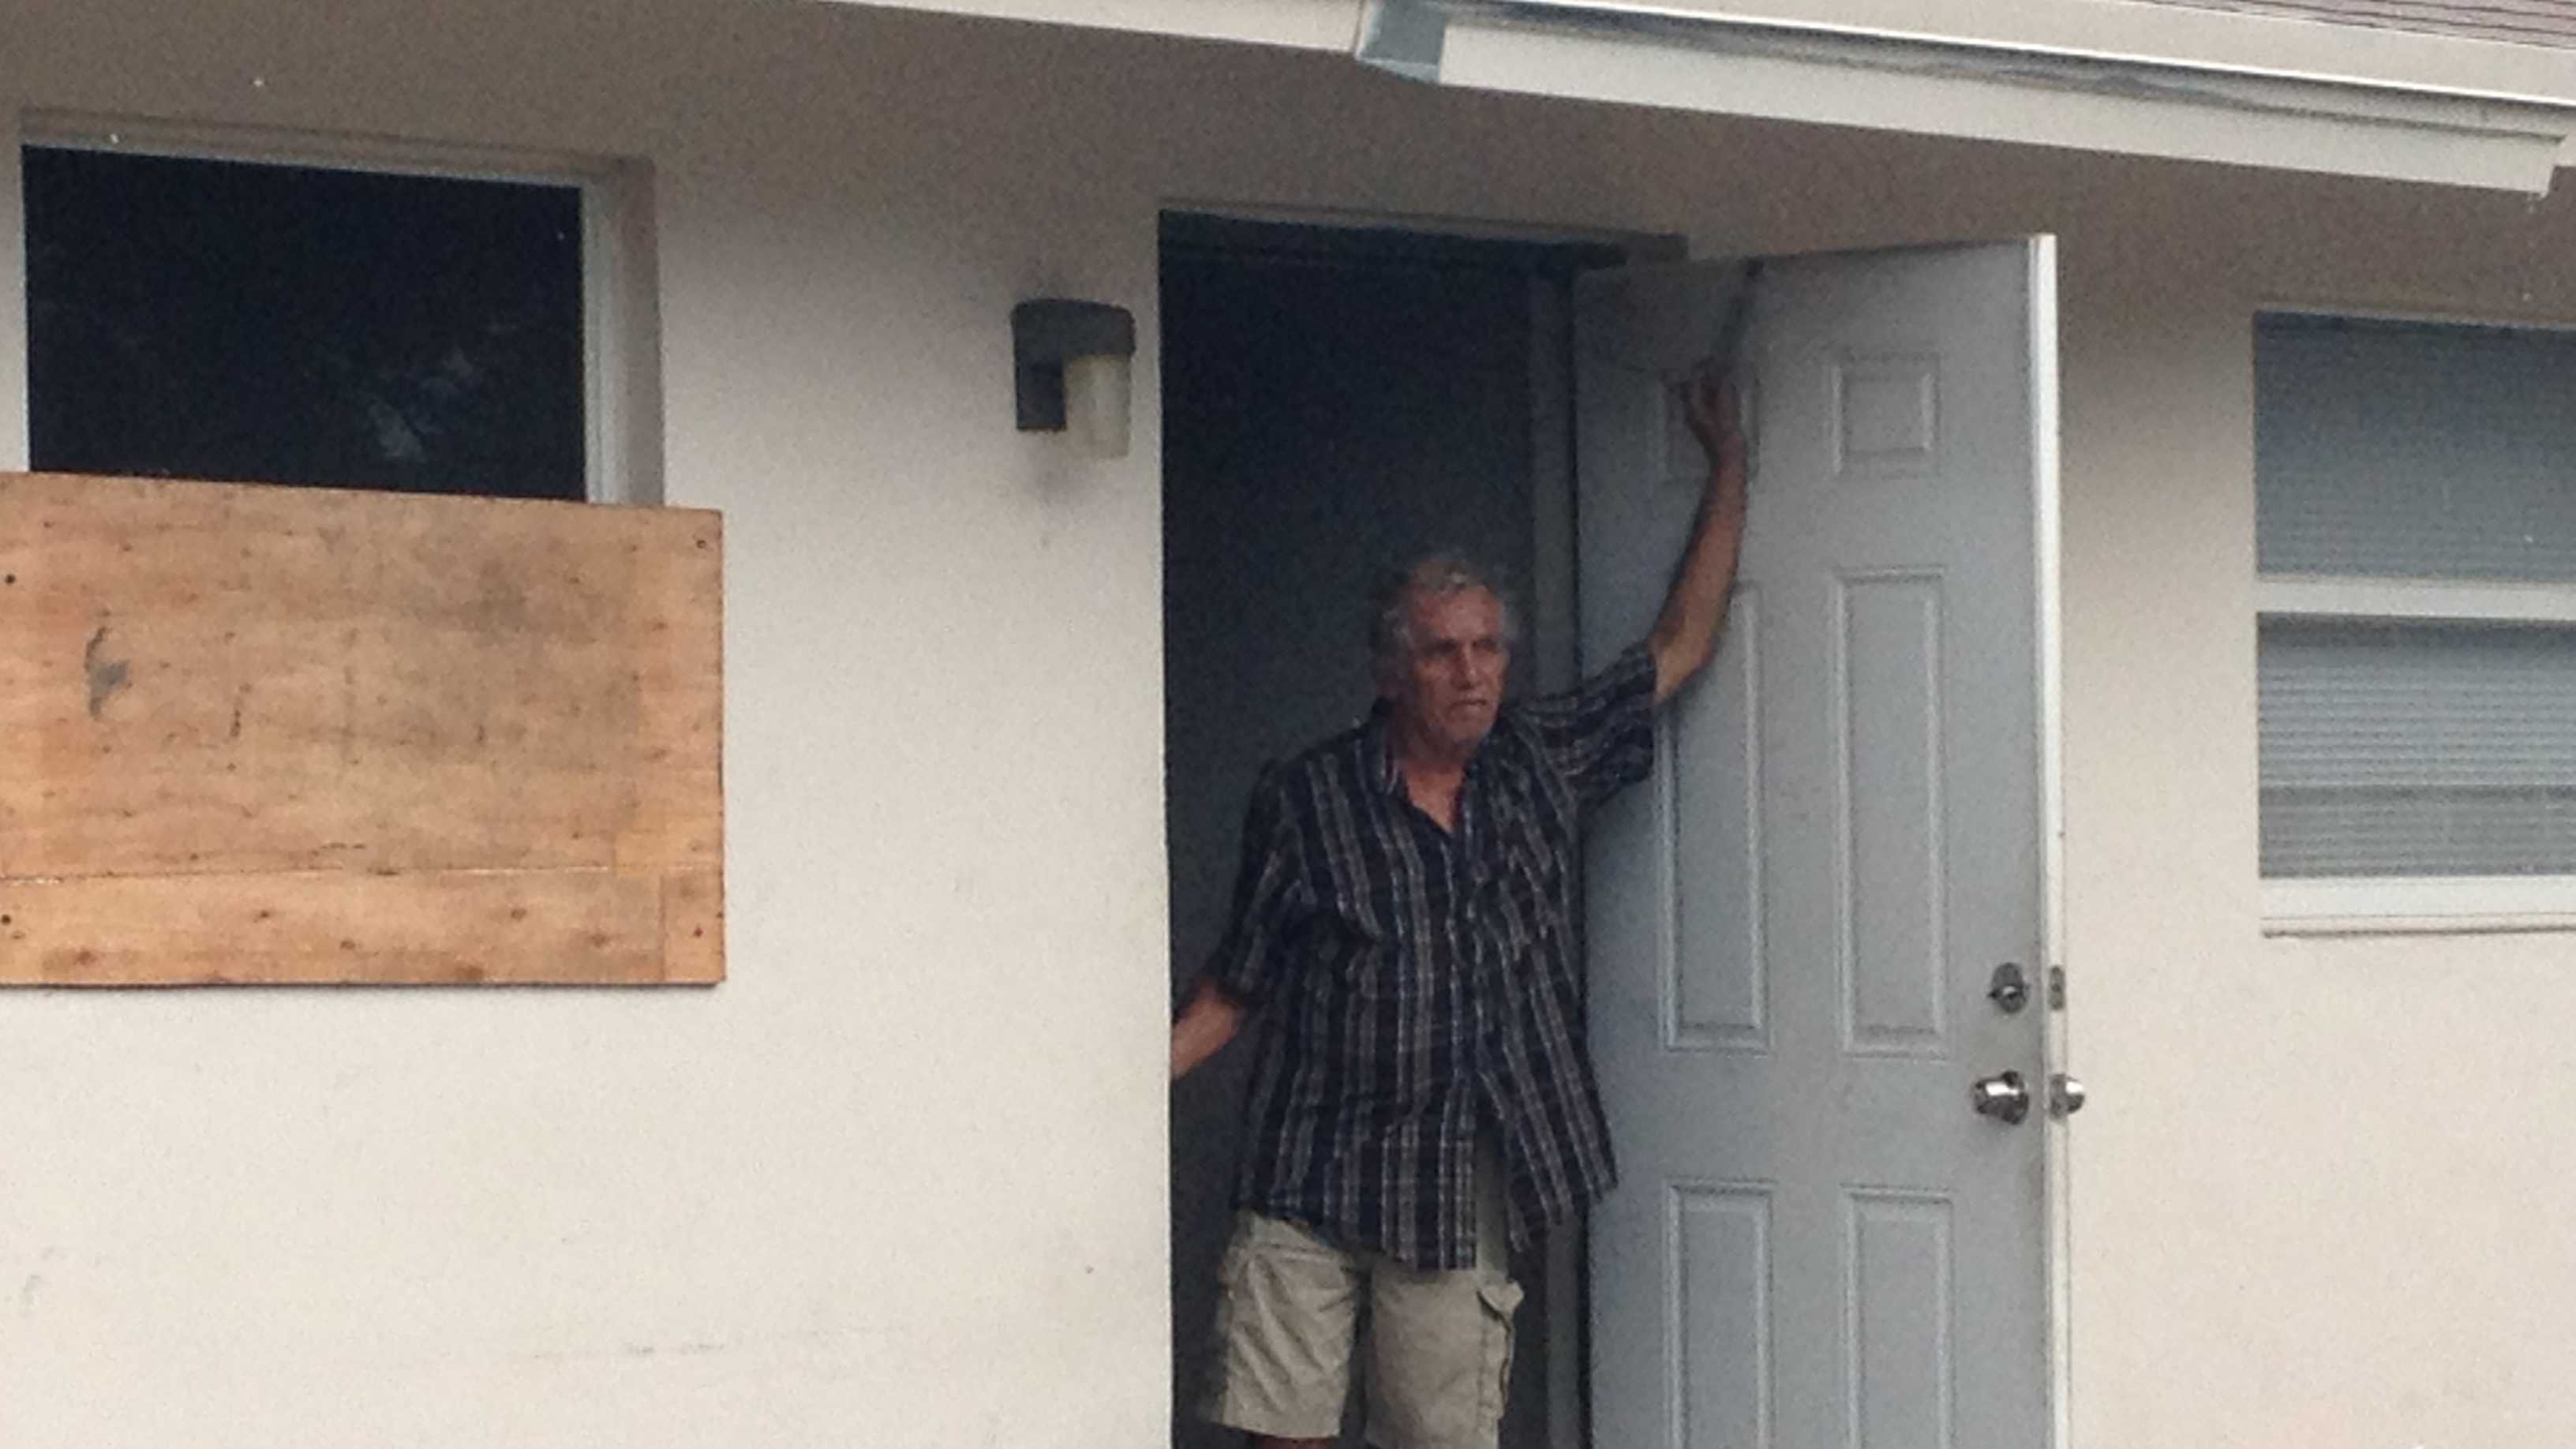 Gregorio Torres is thankful after his neighbors saved him from a fire at his Boca Raton home.